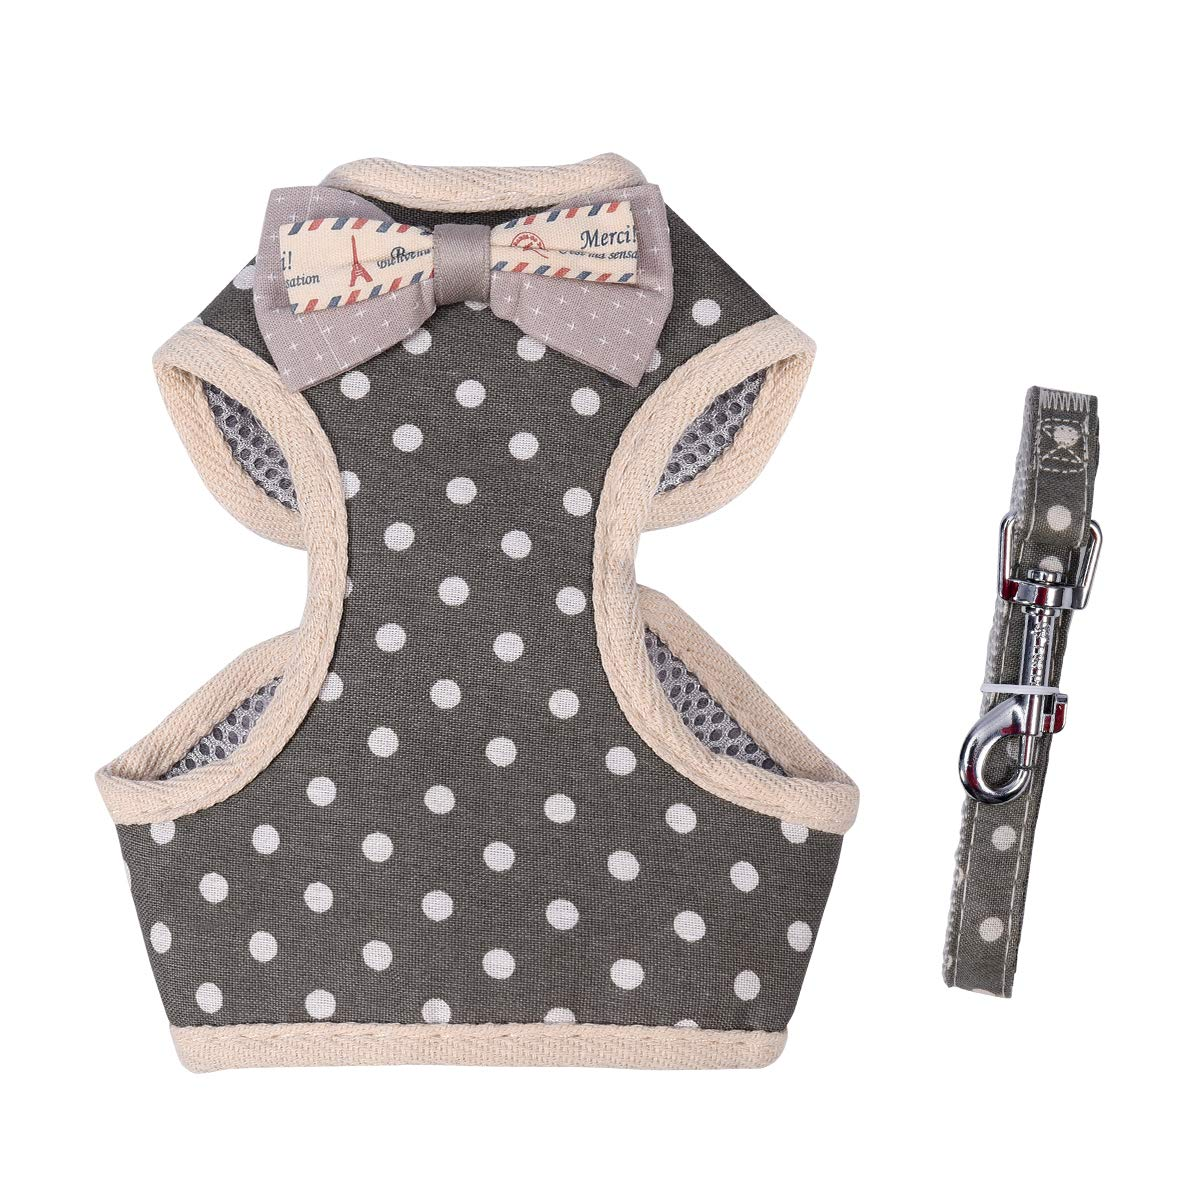 Grey-white spots M Chest Girth15\ Grey-white spots M Chest Girth15\ April Pets Comfortable Stylish Cotton Dog & Cat Harness Leash Set for Small Puppies and Cats (M, Grey-White Spots)